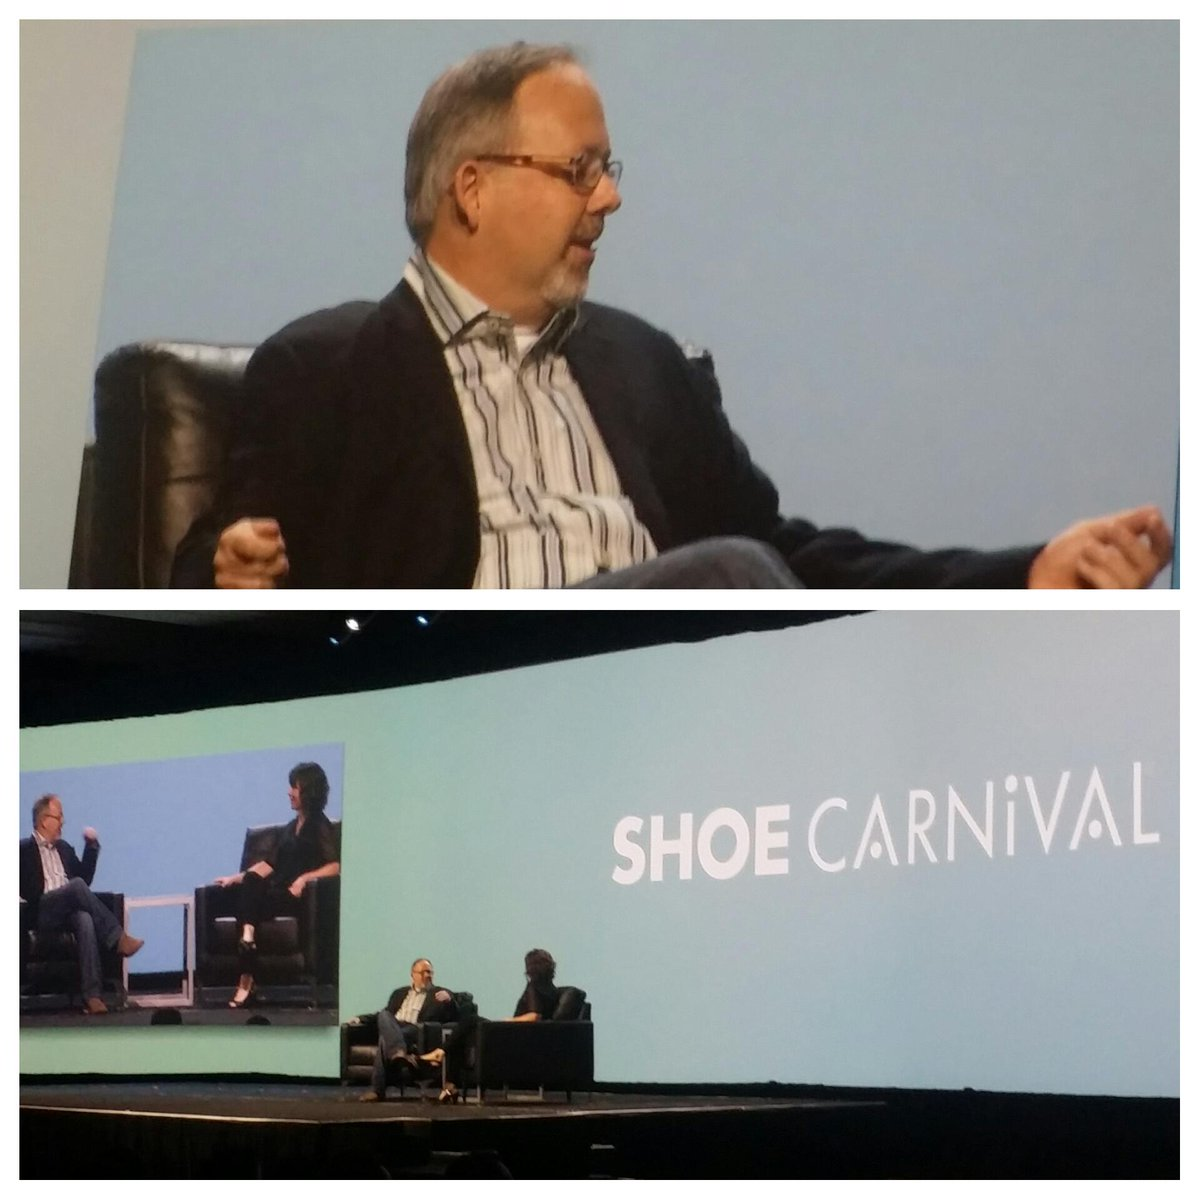 LawrenceByrd: #omnichannel. Ship from Store. 400 stores. Largest store is @magento site. @ShoeCarnival does it all #imaginecommerce http://t.co/WOFwFRHyM3